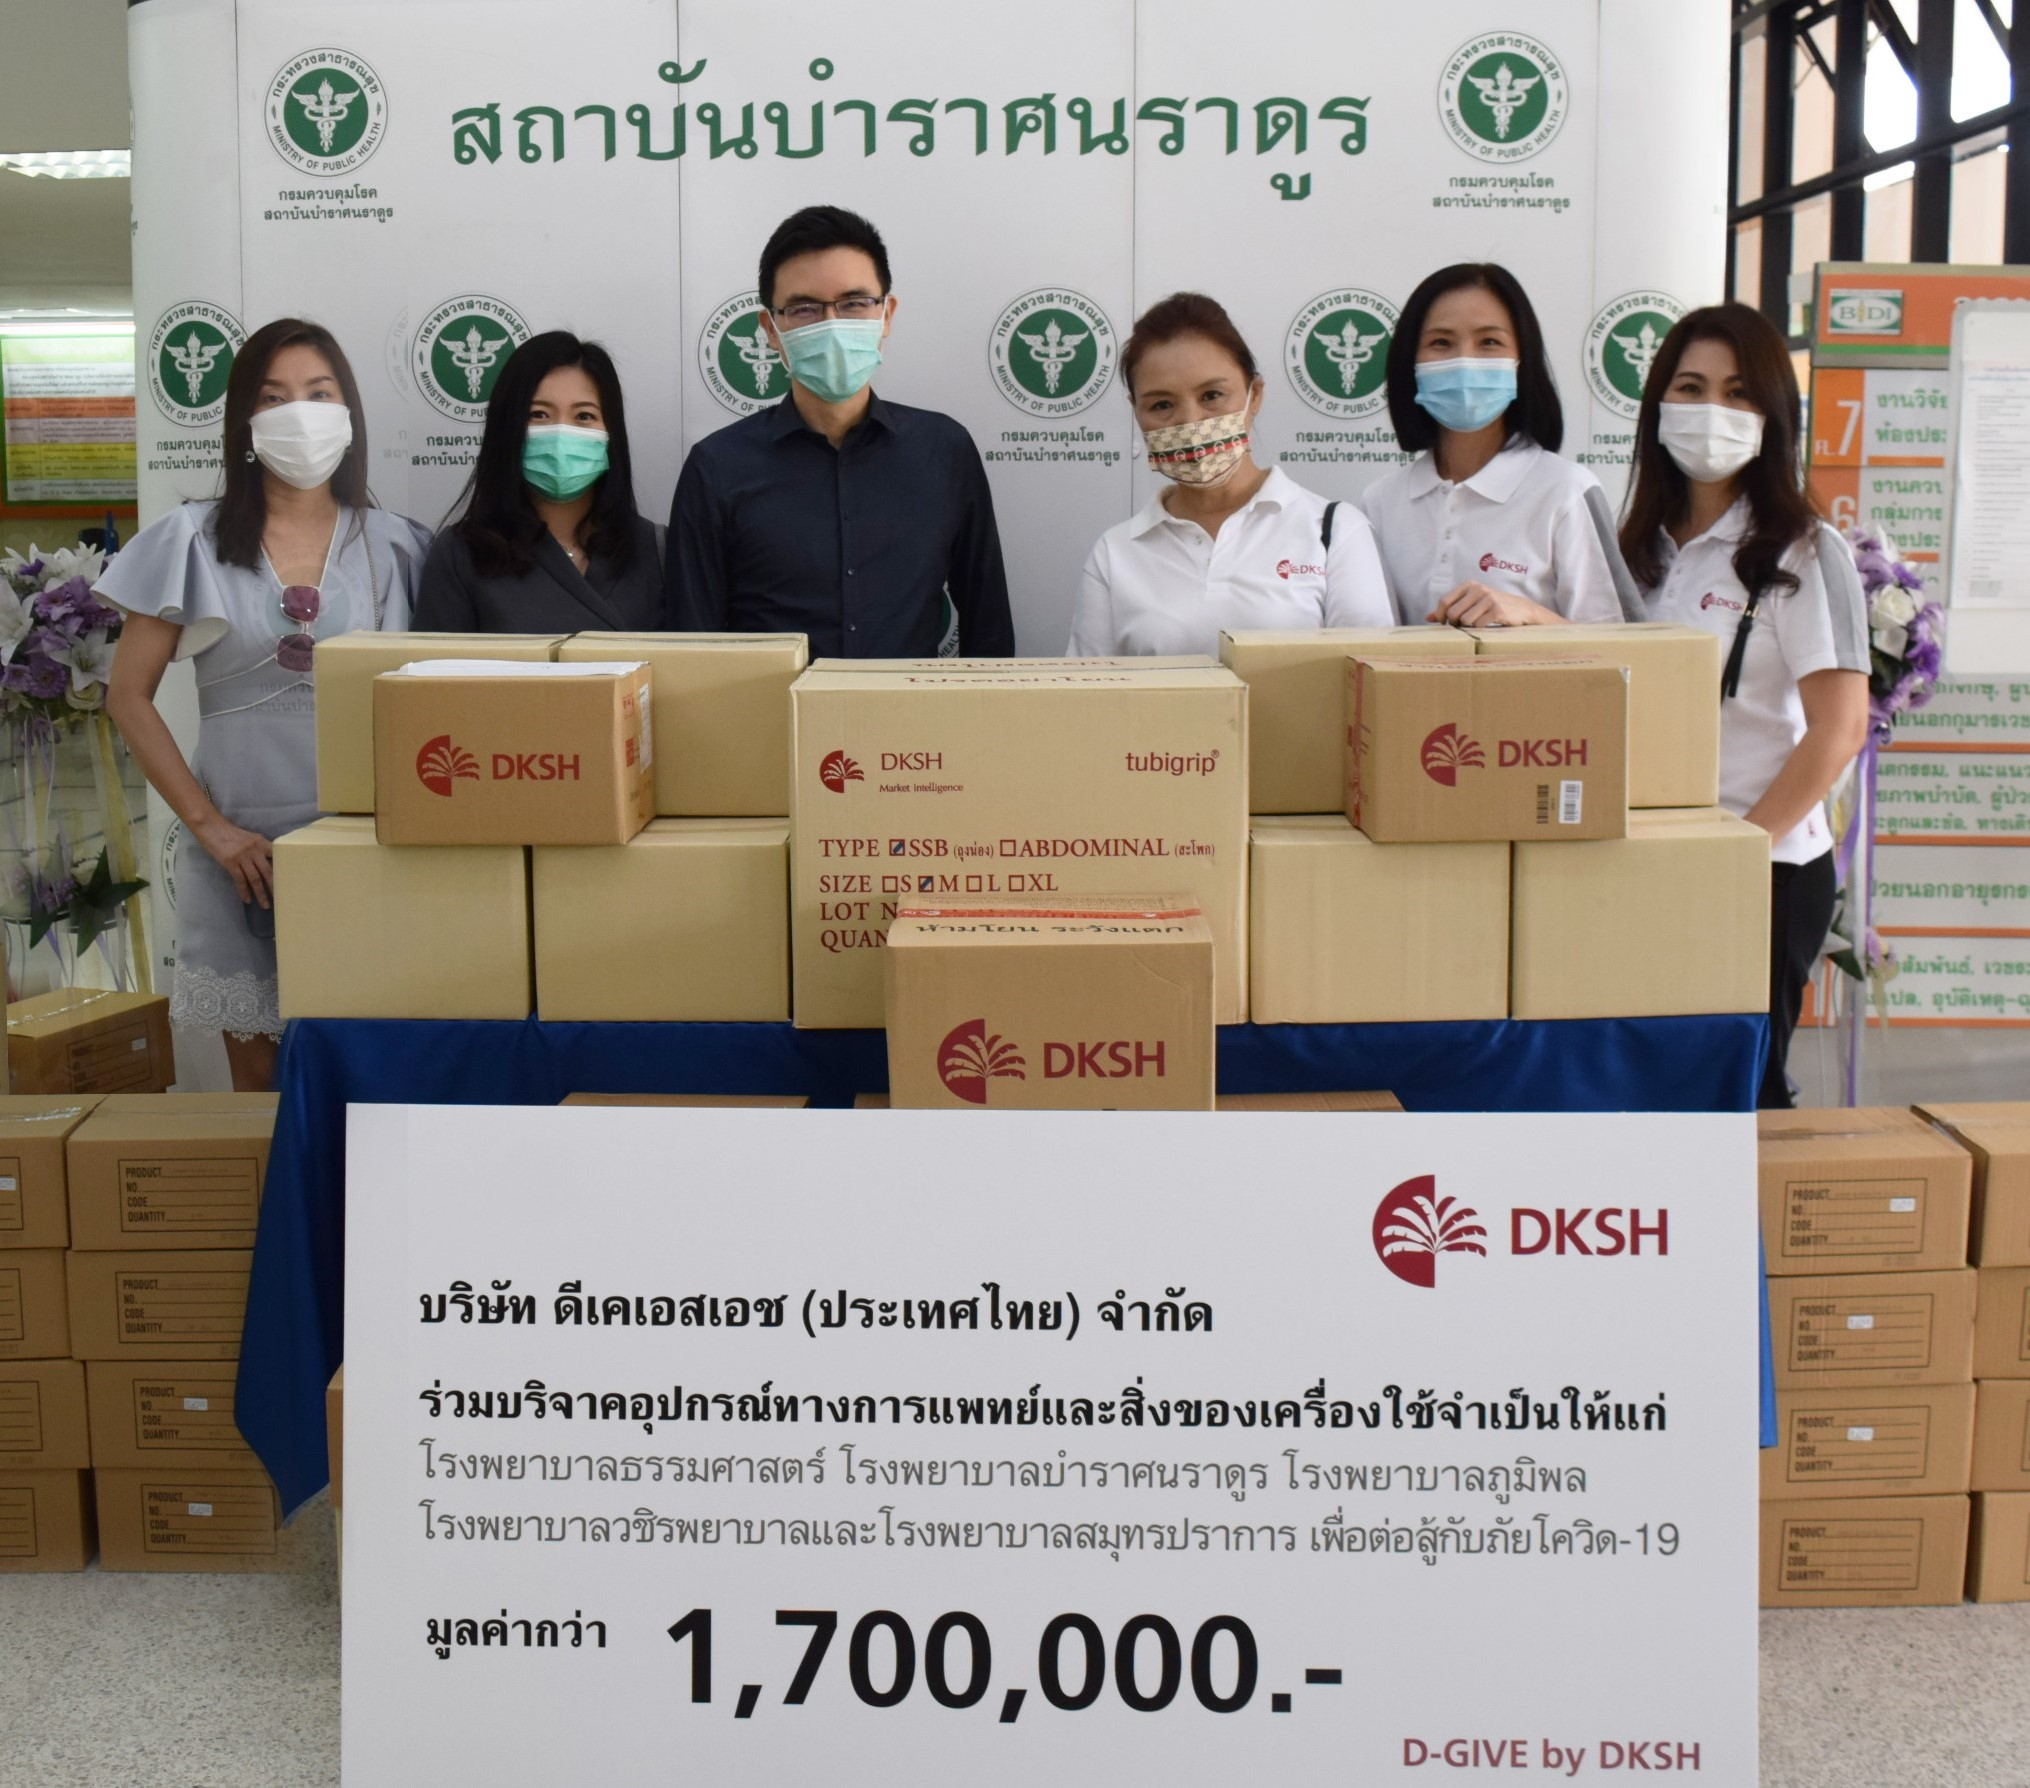 DKSH continues to support Thai hospitals with medical supplies during the reemergence of COVID-19 cases